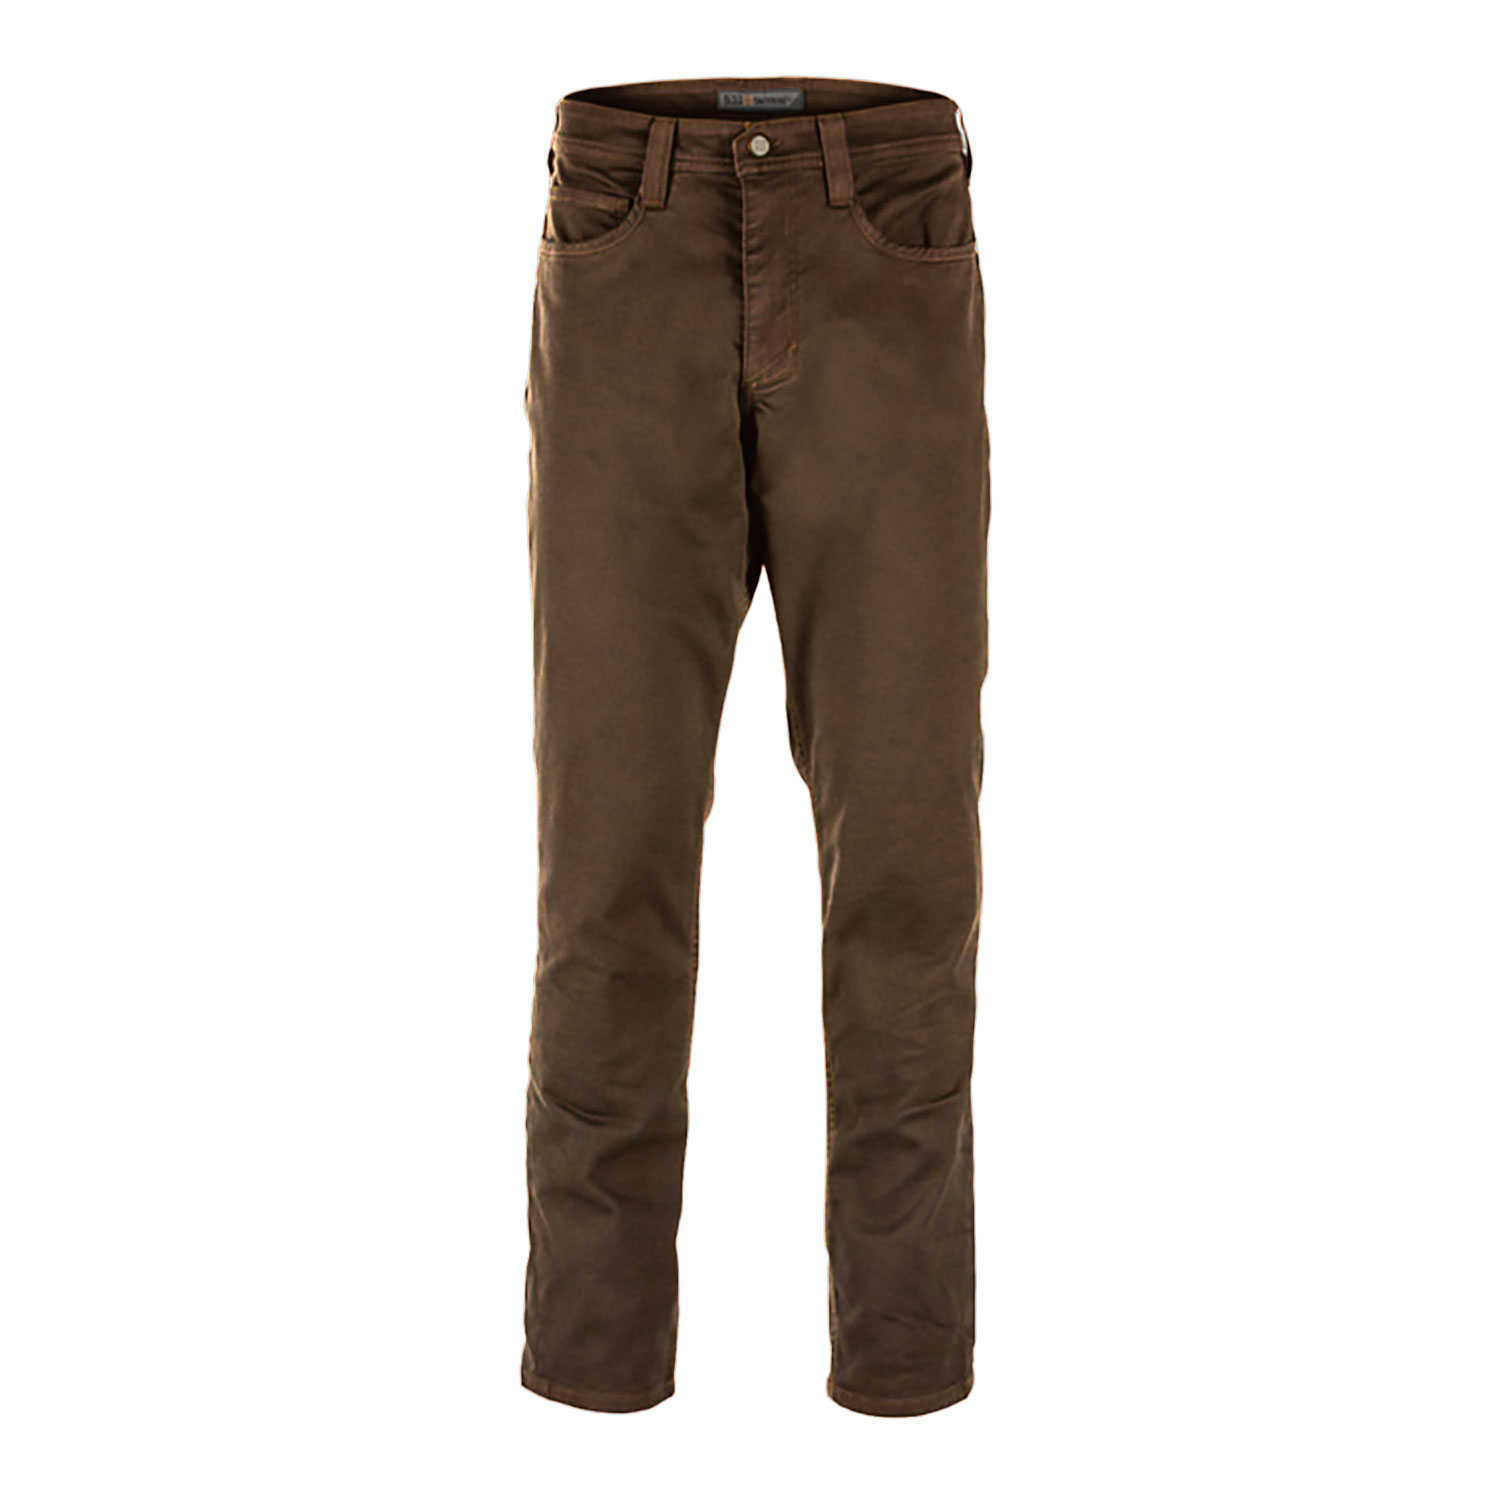 5.11 Tactical Defender Flex Pants